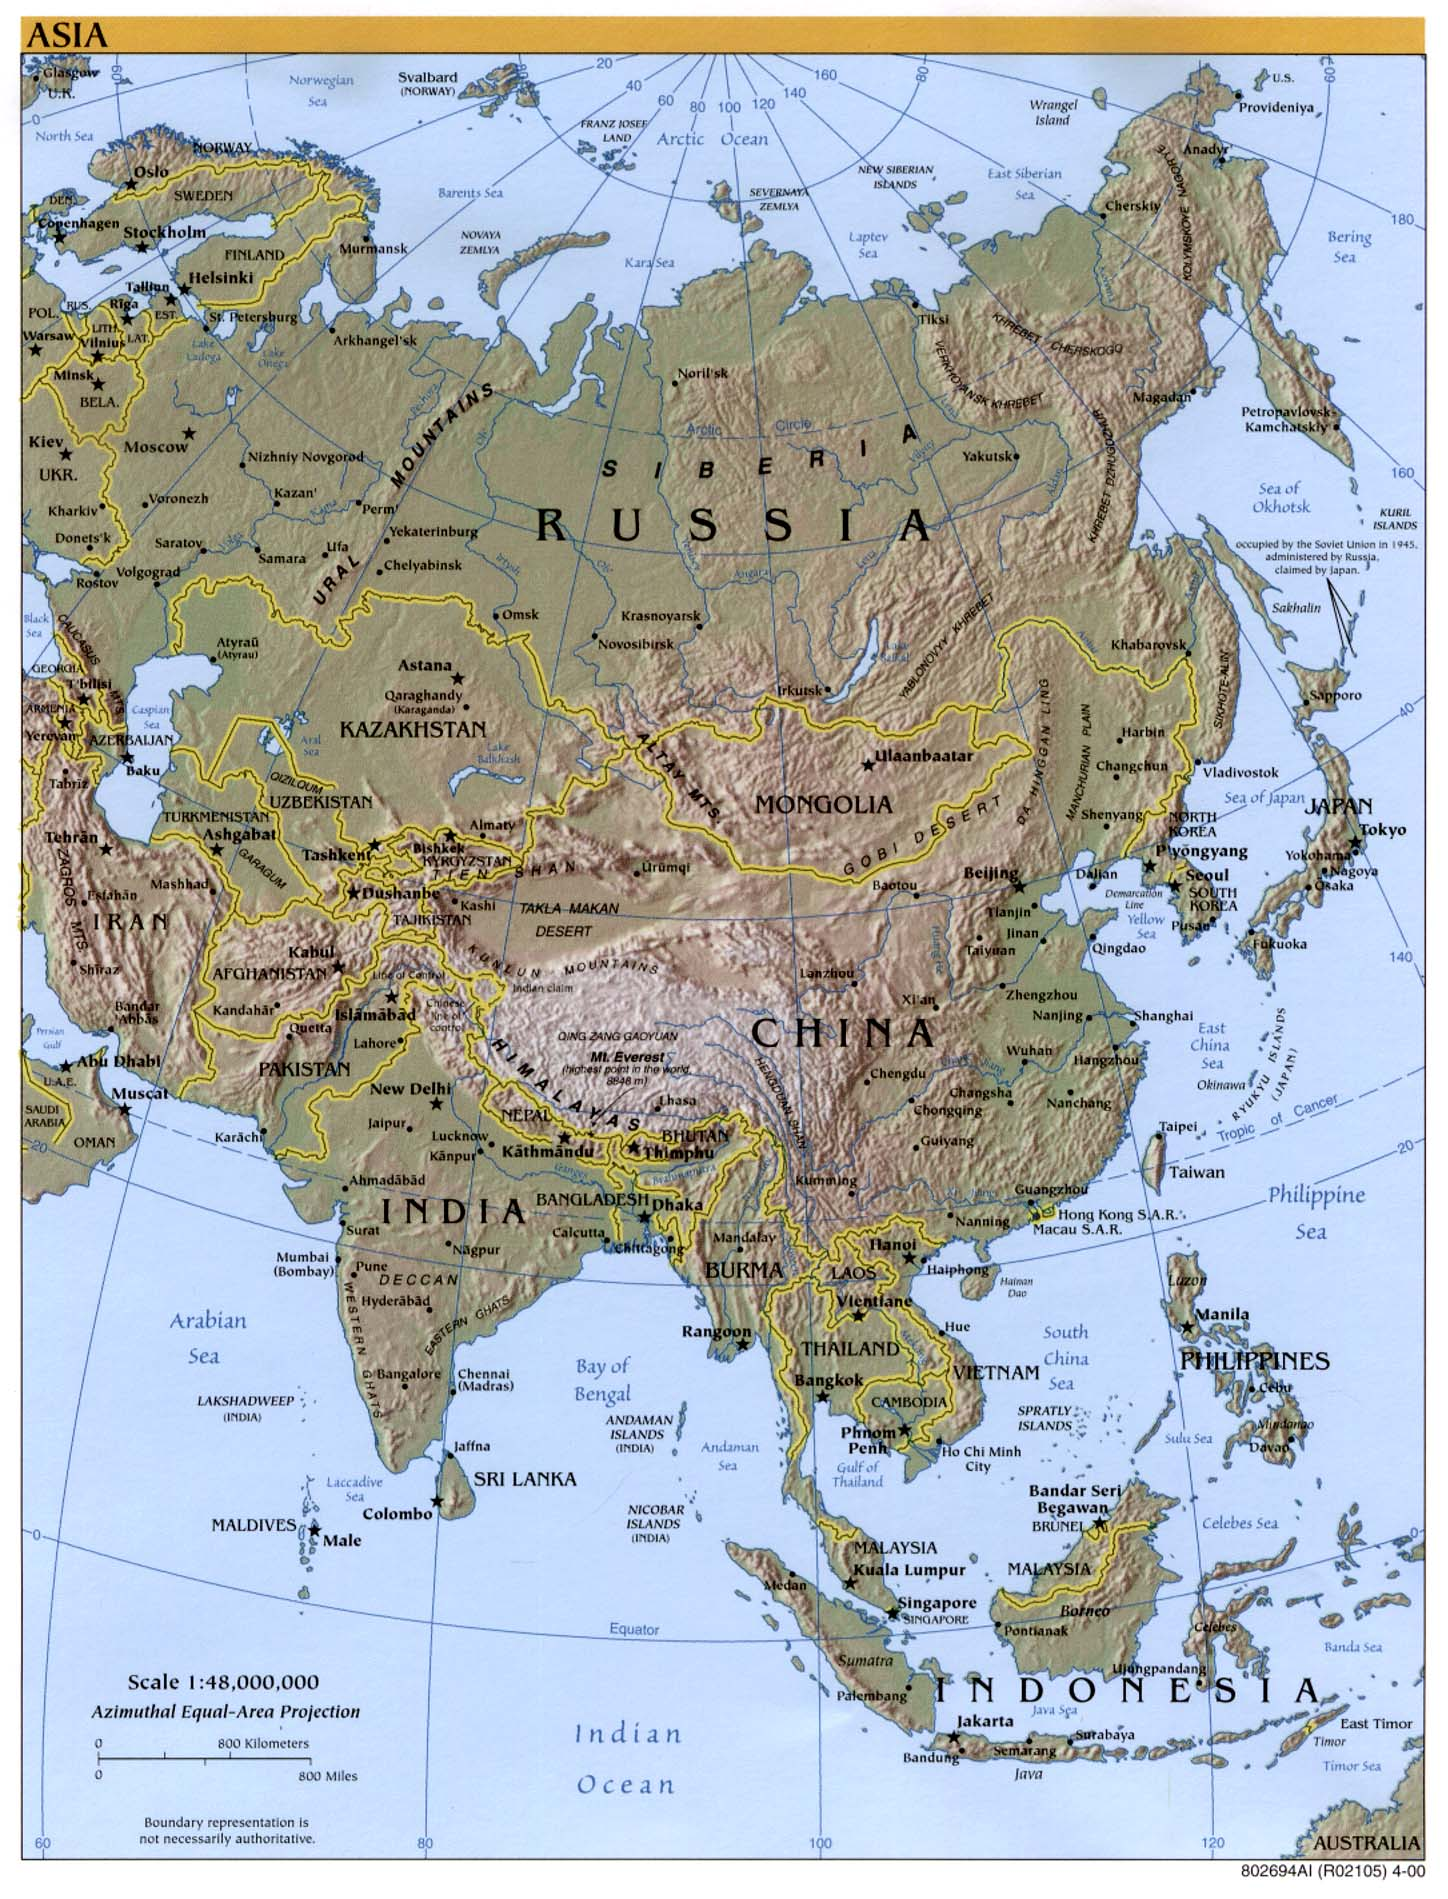 Large Map Of Asia.Interopp Org Physical Map Of Asia Large 2000